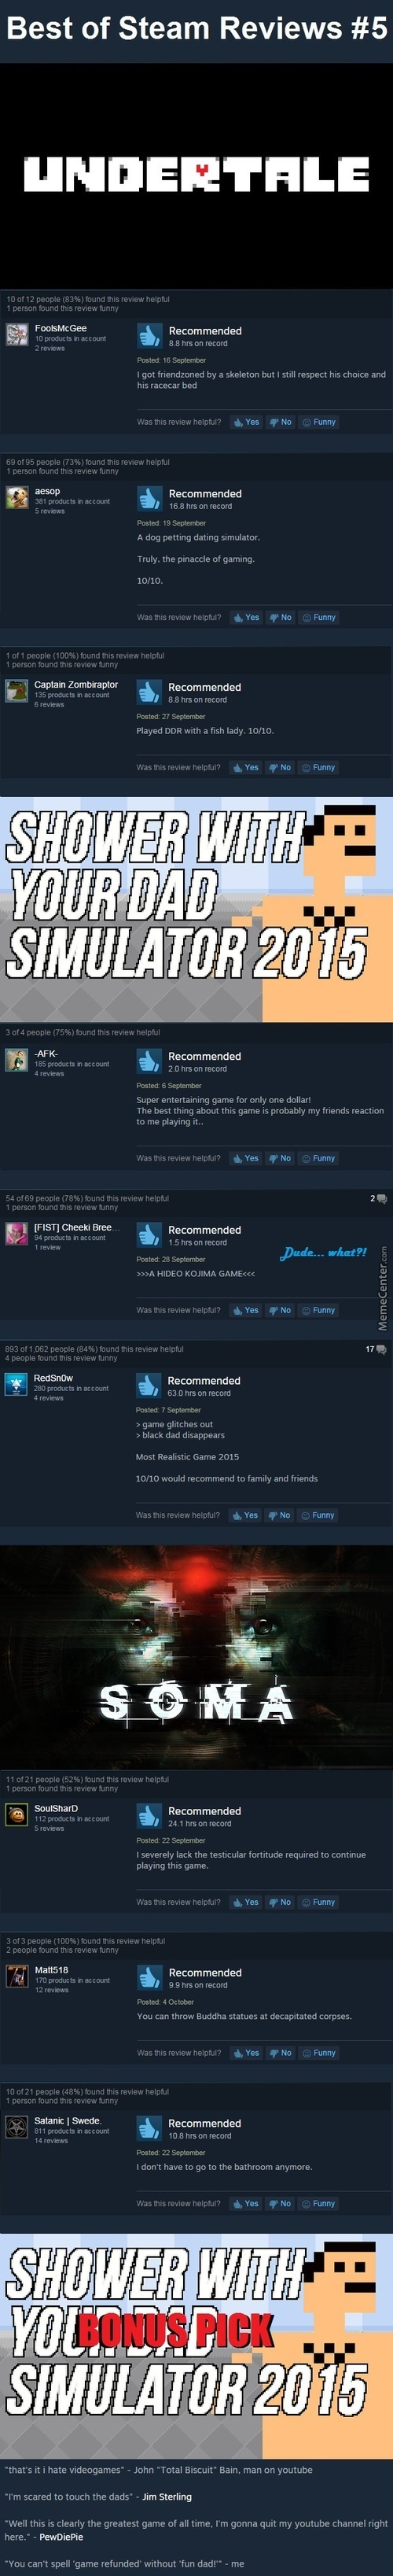 Best Steam Reviews #5 - Indie Games